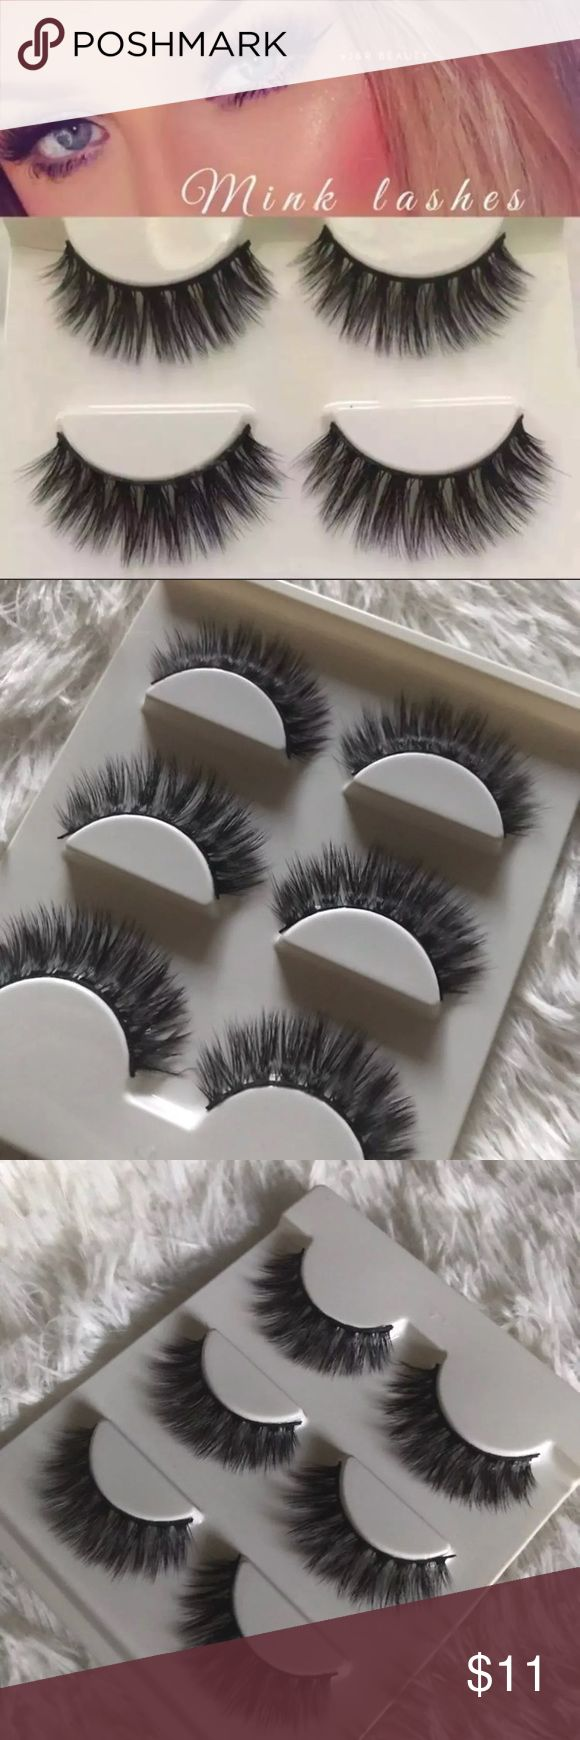 Mink Lashes 3 pairs +$2 Add on eyelash Applicator  +$3 Add on eyelash glue Please message me if you want to add them.   ❌No Offers ✅ Bundle &  Save  # tags Iconic, mink, red cherry eyelashes, house of lashes, doll, kawaii, case, full, natural,  Koko, Ardell, wispies, Demi , makeup, Iconic, mink, red cherry eyelashes, house of lashes, doll, kawaii, case, full, natural,  Koko, Ardell, wispies, Demi , makeup, mascara, eyelash applicator, Mykonos Mink , Lashes , wispy ,eyelash case, mink lashes